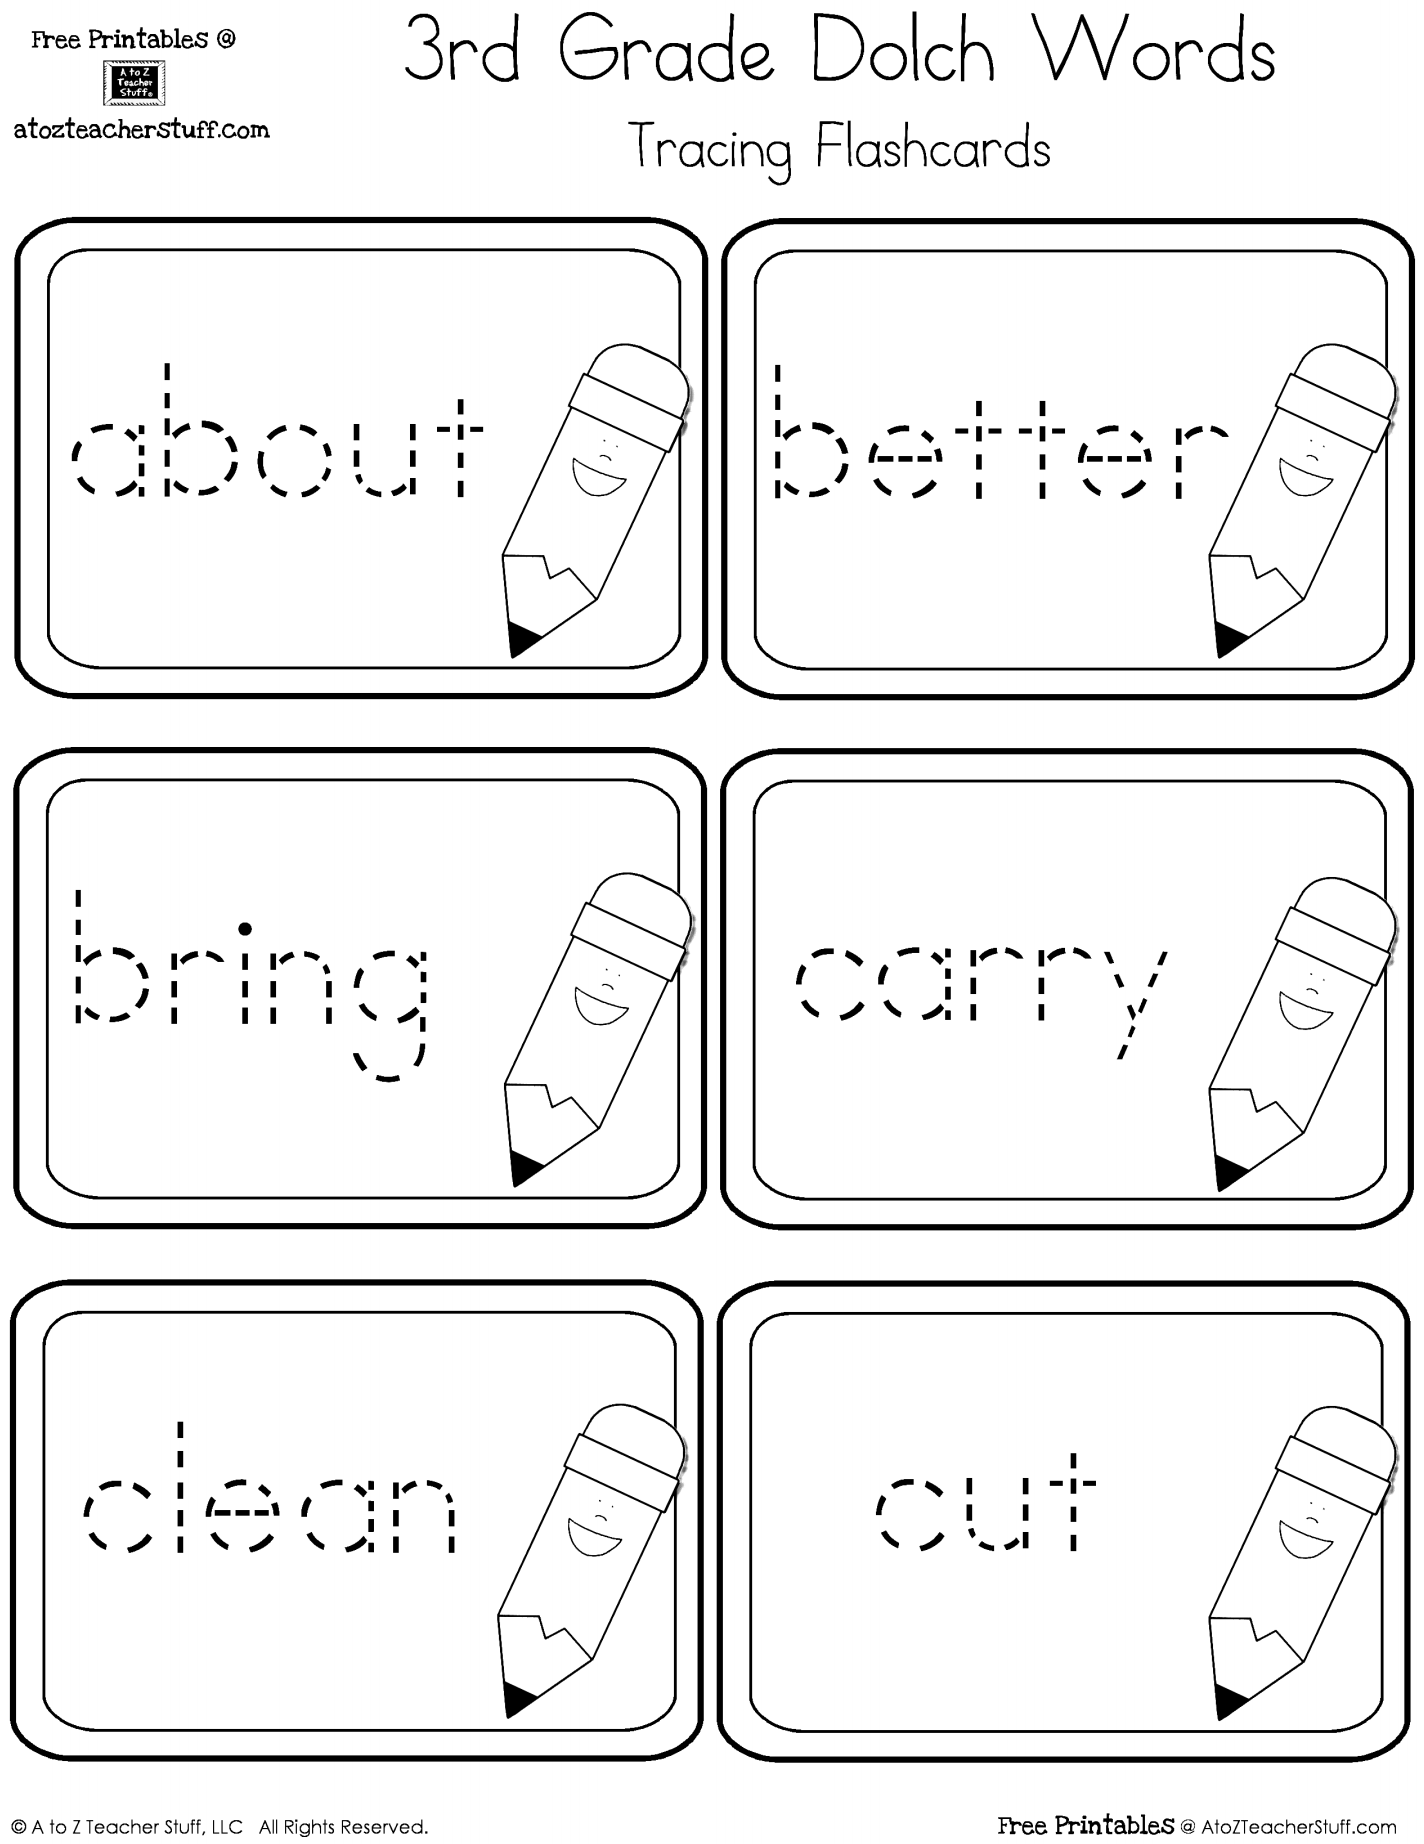 Worksheets Free Printable Sight Word Worksheets third grade dolch sight words tracing flashcards a to z teacher 3rd cards free printables